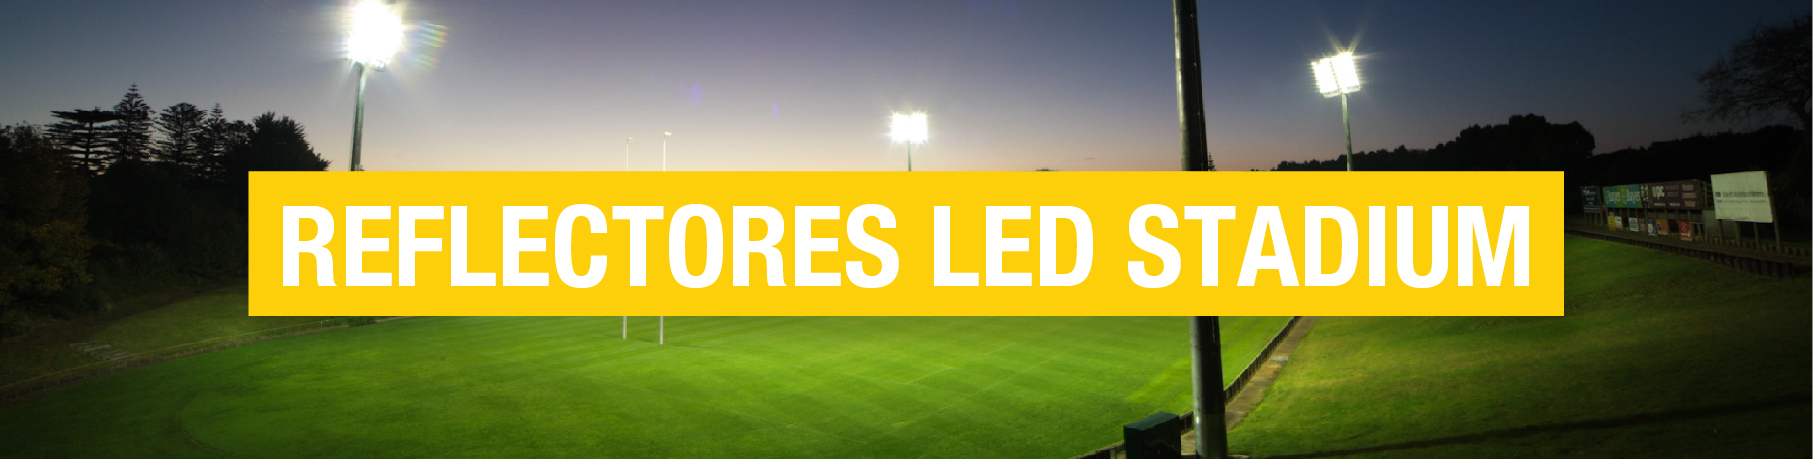 Reflectores LED Stadium